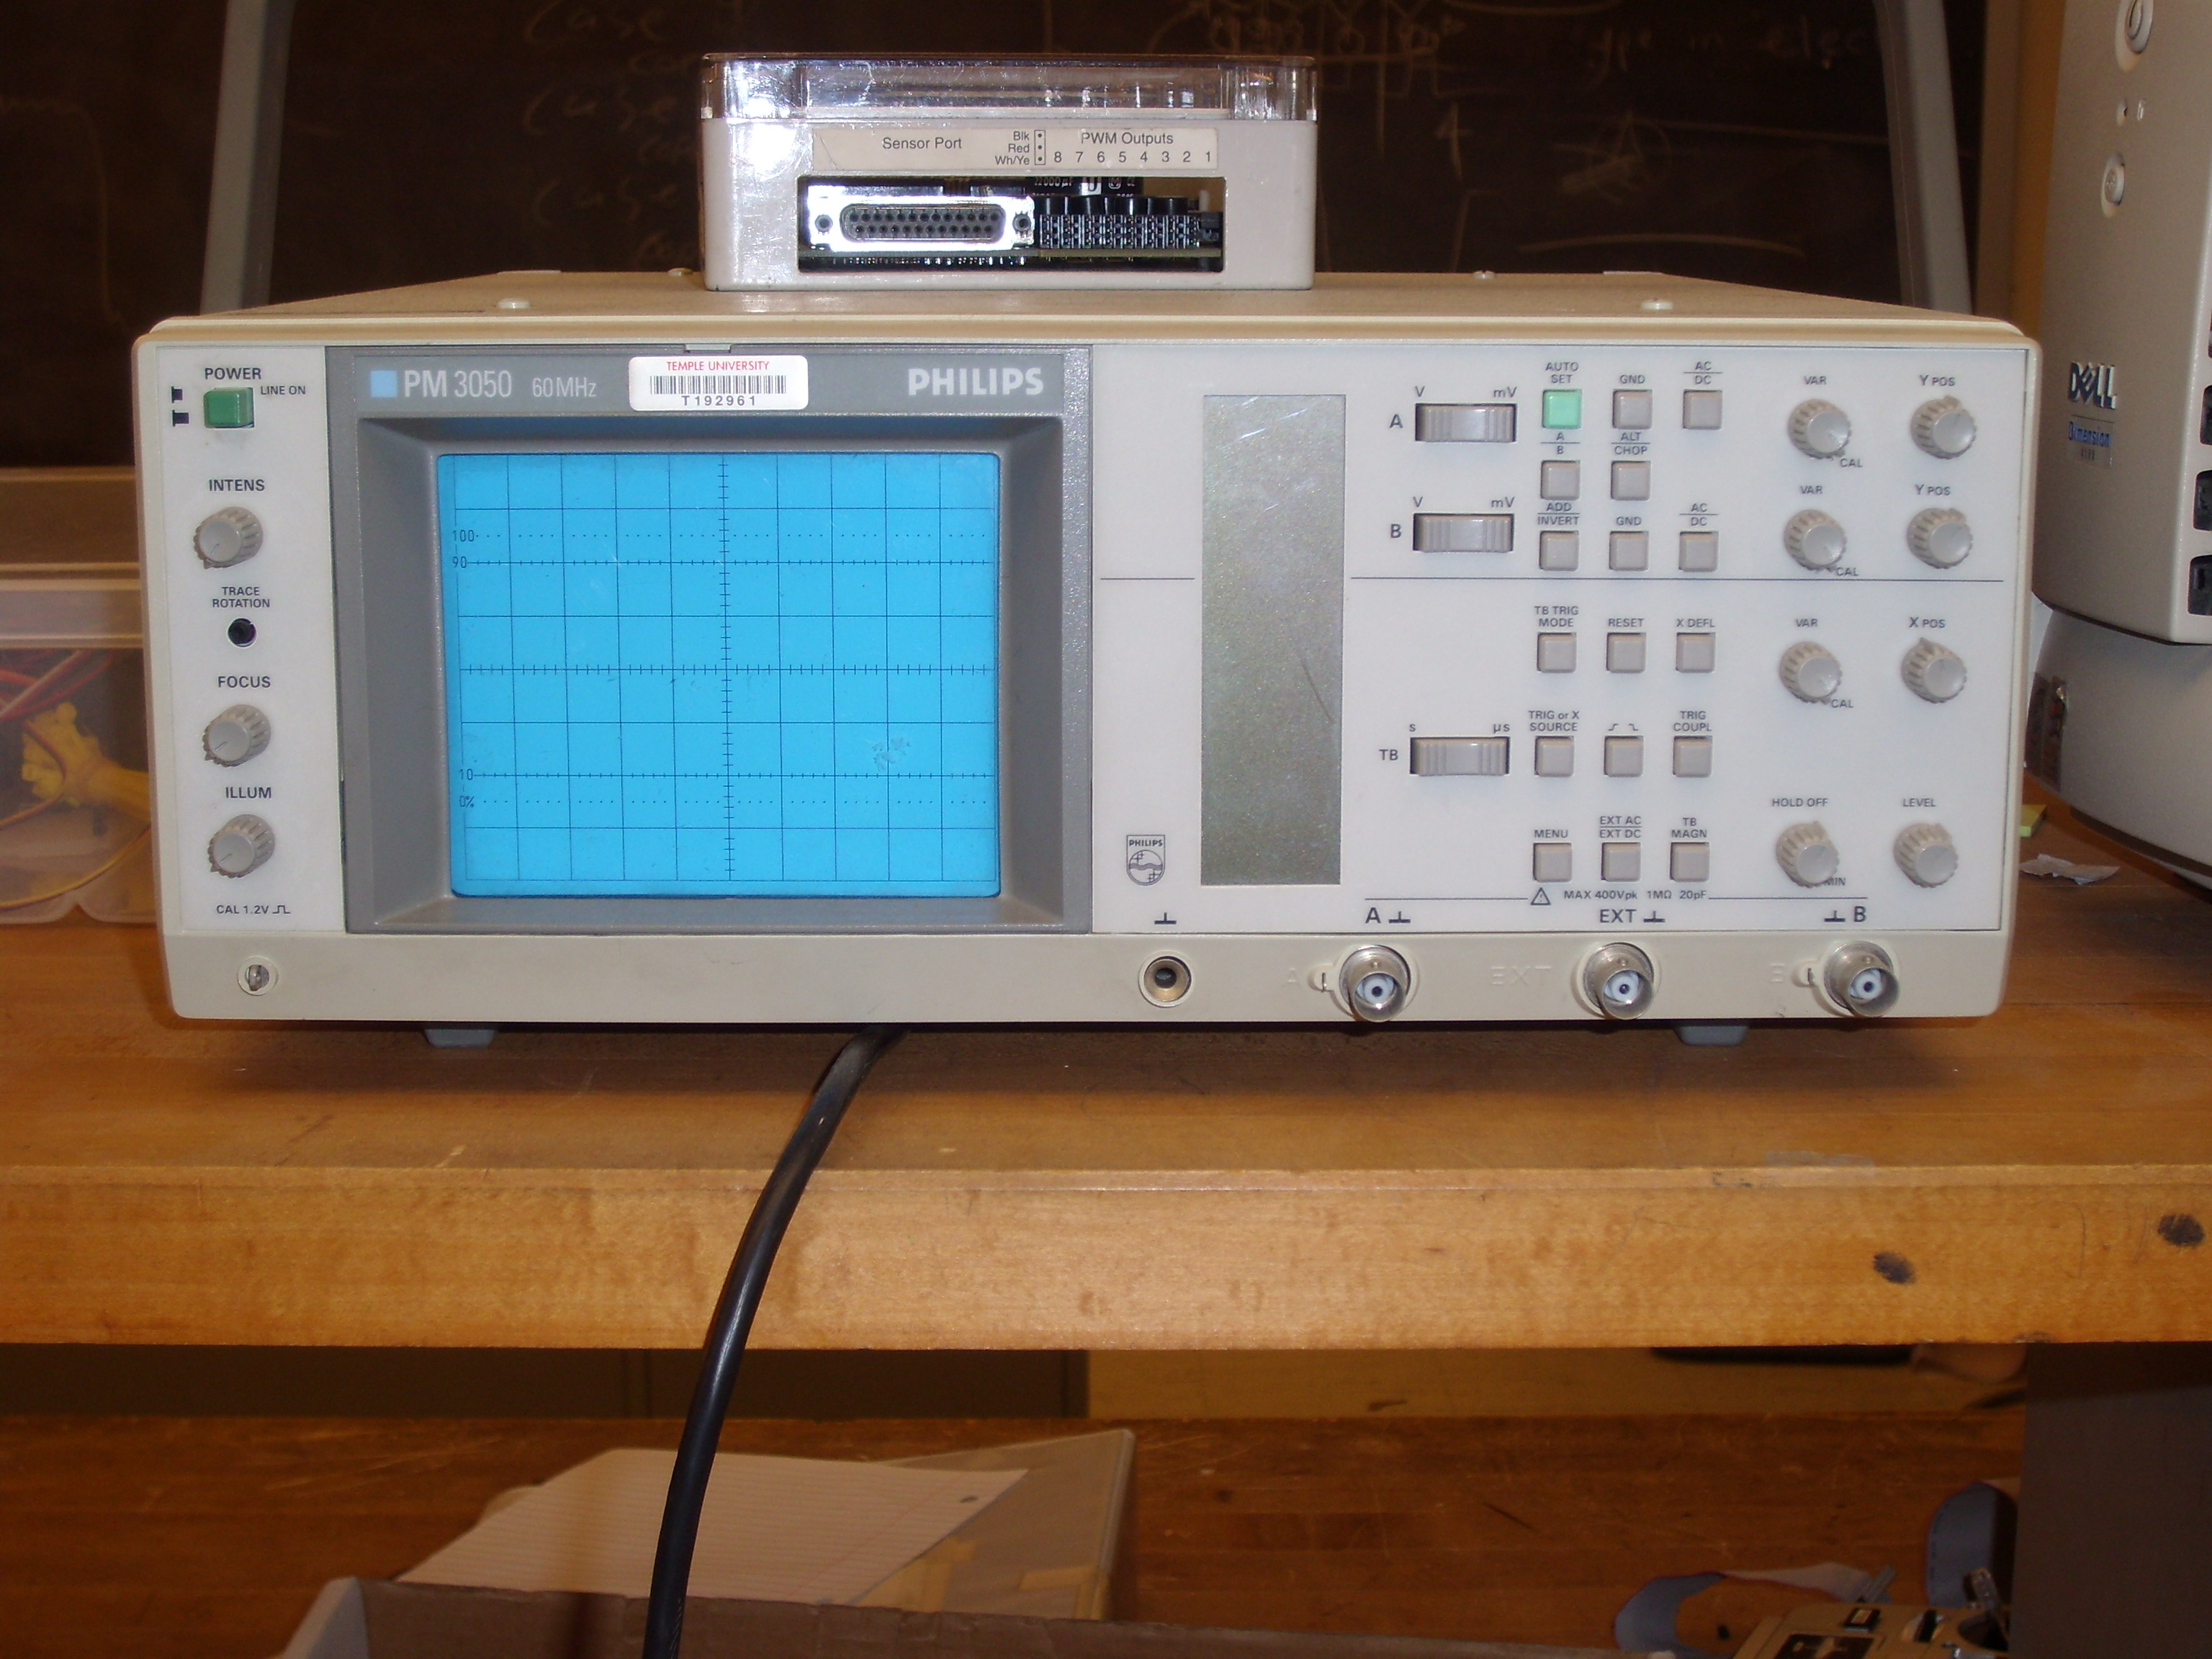 Philips PM3050 Oscilloscope